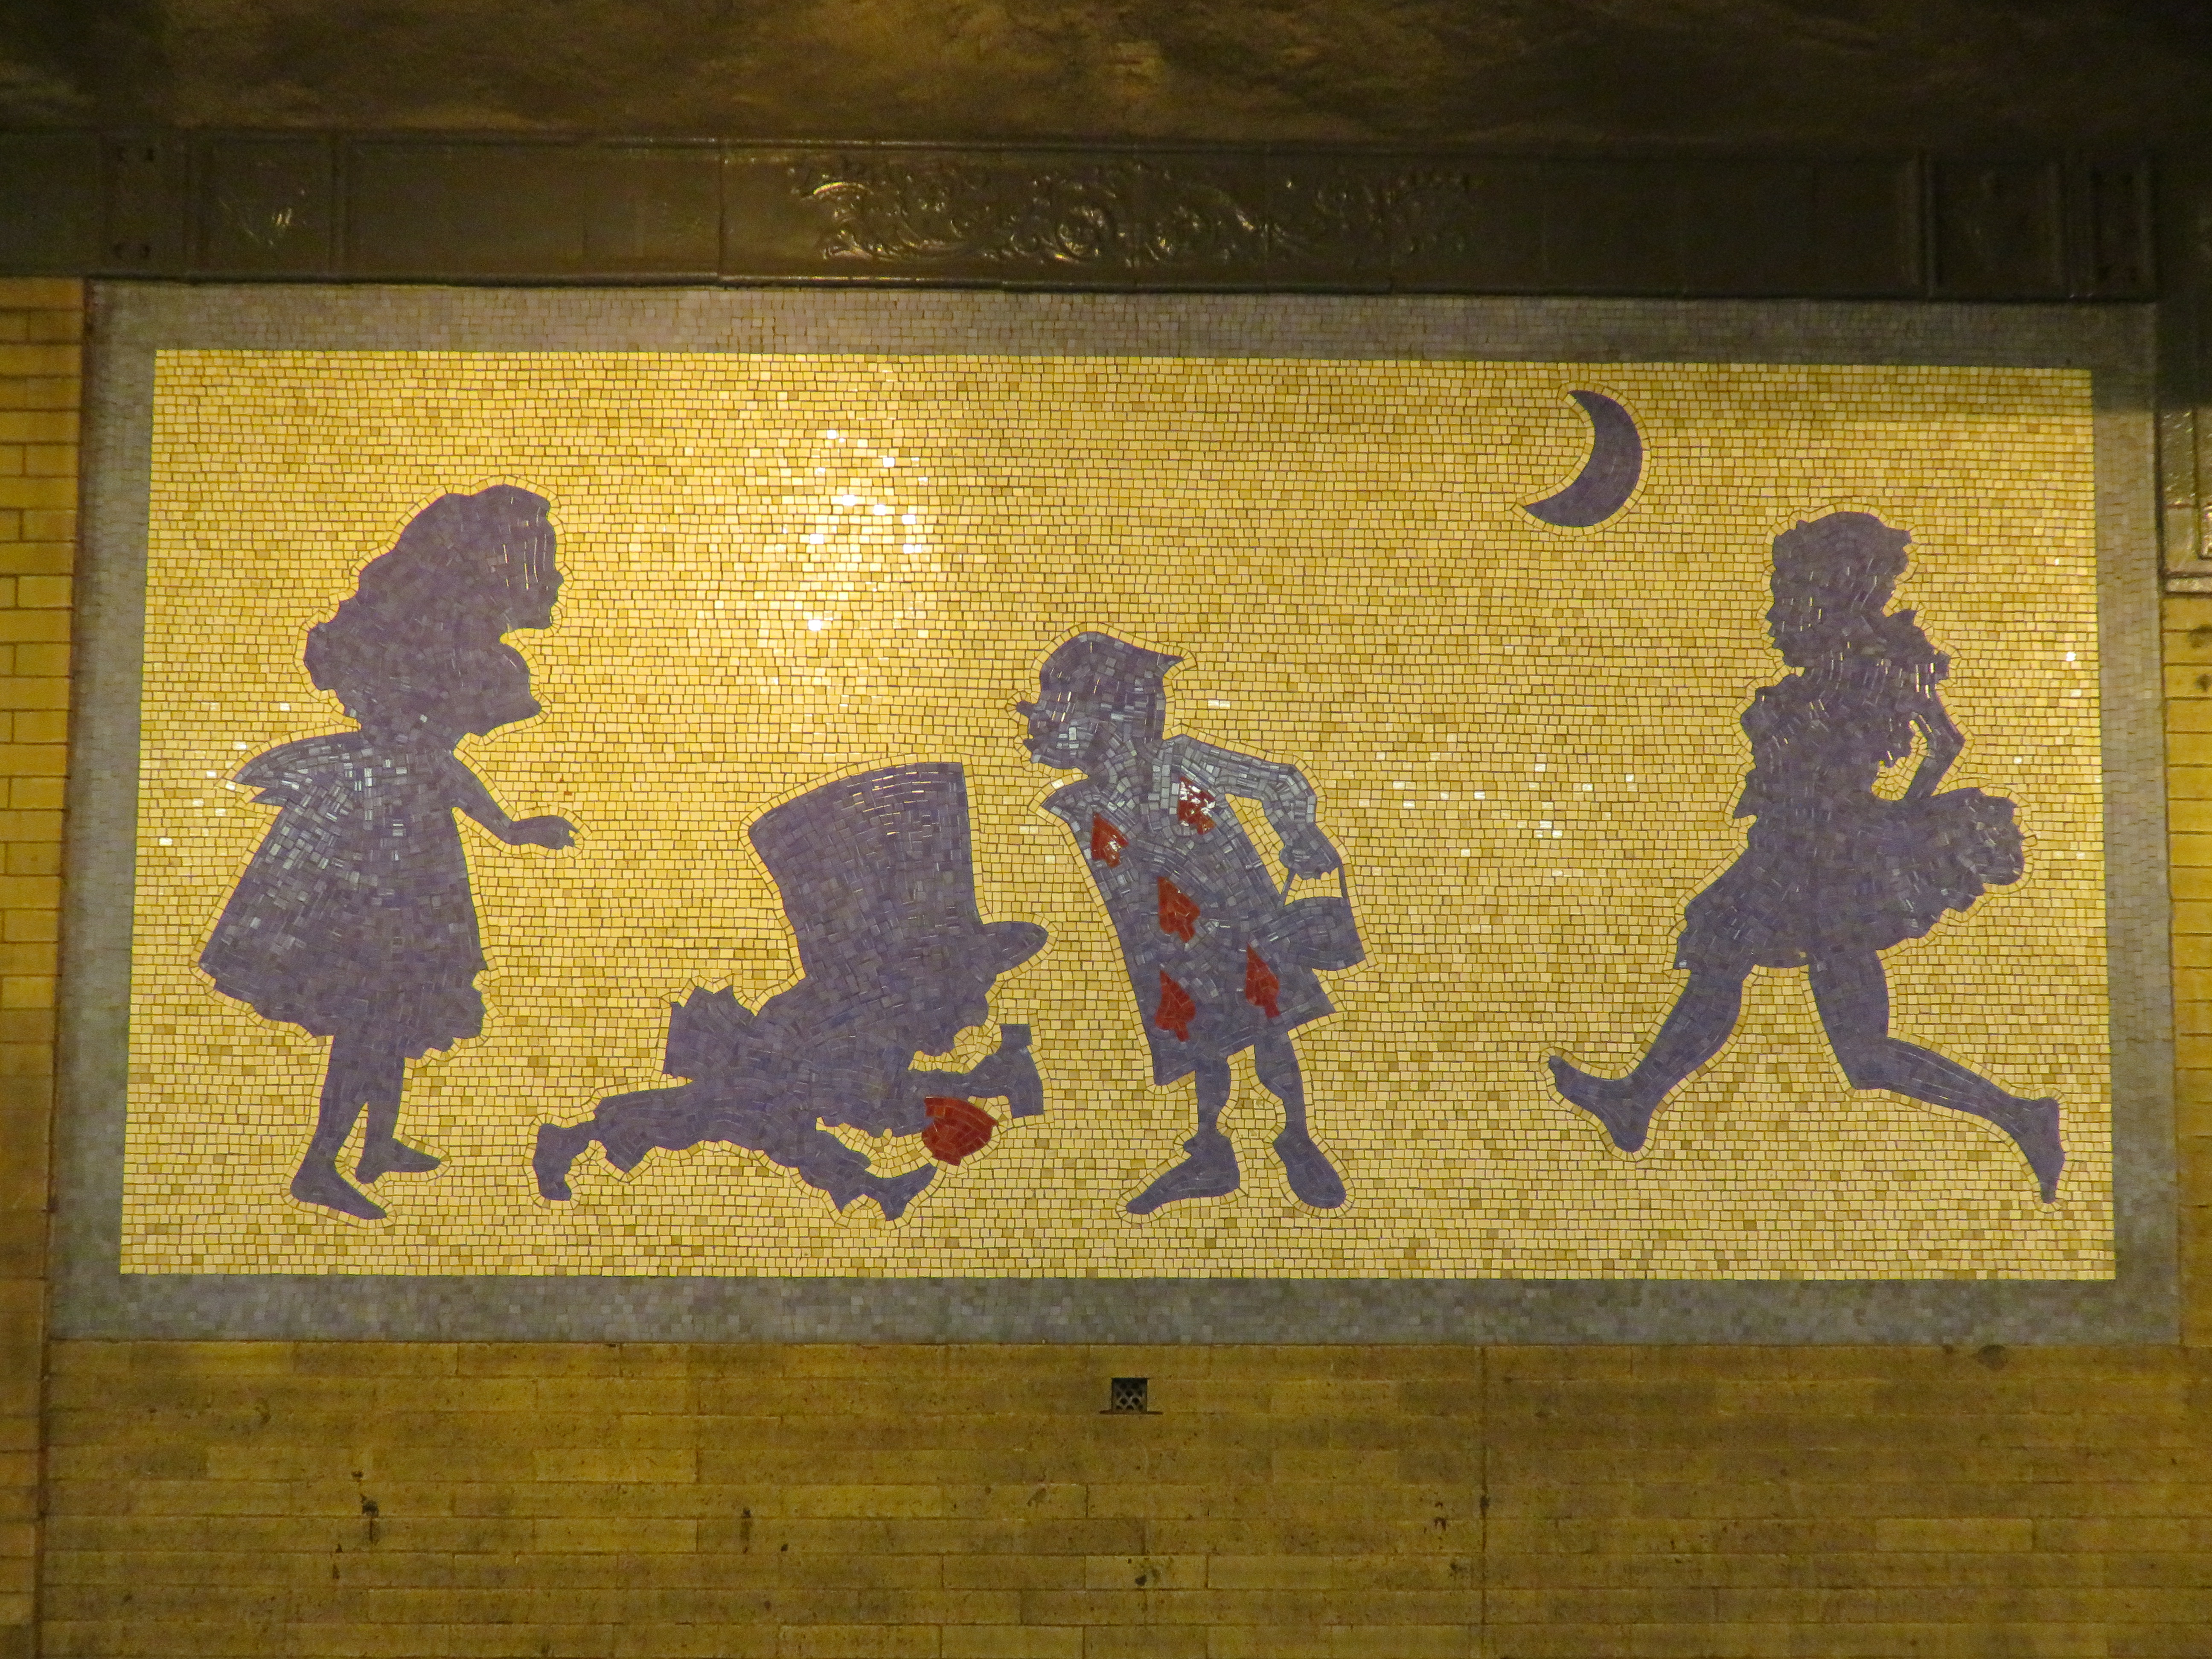 Subway Station Art: 50th Street Station – Finding NYC